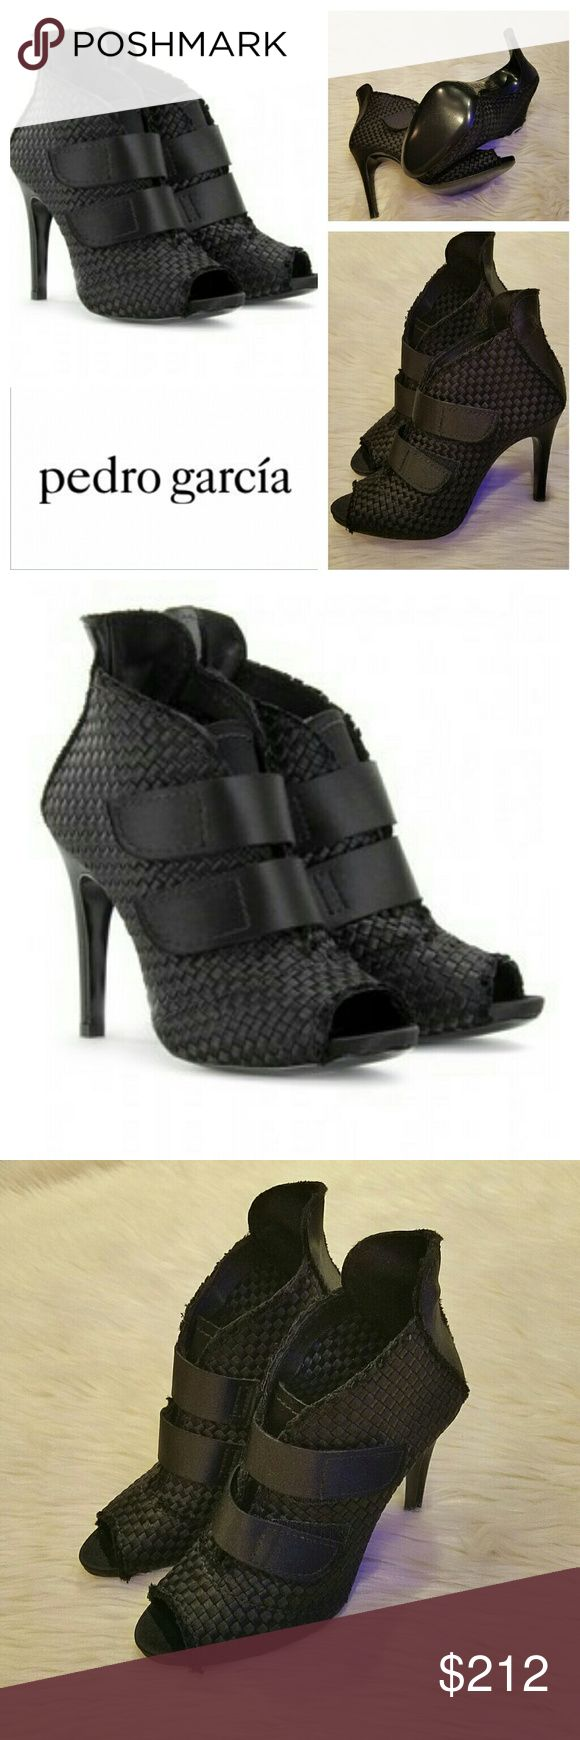 New $595 PEDRO GARCIA Woven Satin Bootie Shimmery woven black satin bootie from the current collection of Pedro Garcia. Amazing shoe that looks great with any outfit! Beautiful frayed trim, perp toe, solid bands fasten at vsmp. Leather sole. Made in Spain. Ultra Feminine! Brand New, no box. Size 40/10 runs small.  Retails for  $595 Pedro Garcia Shoes Ankle Boots & Booties